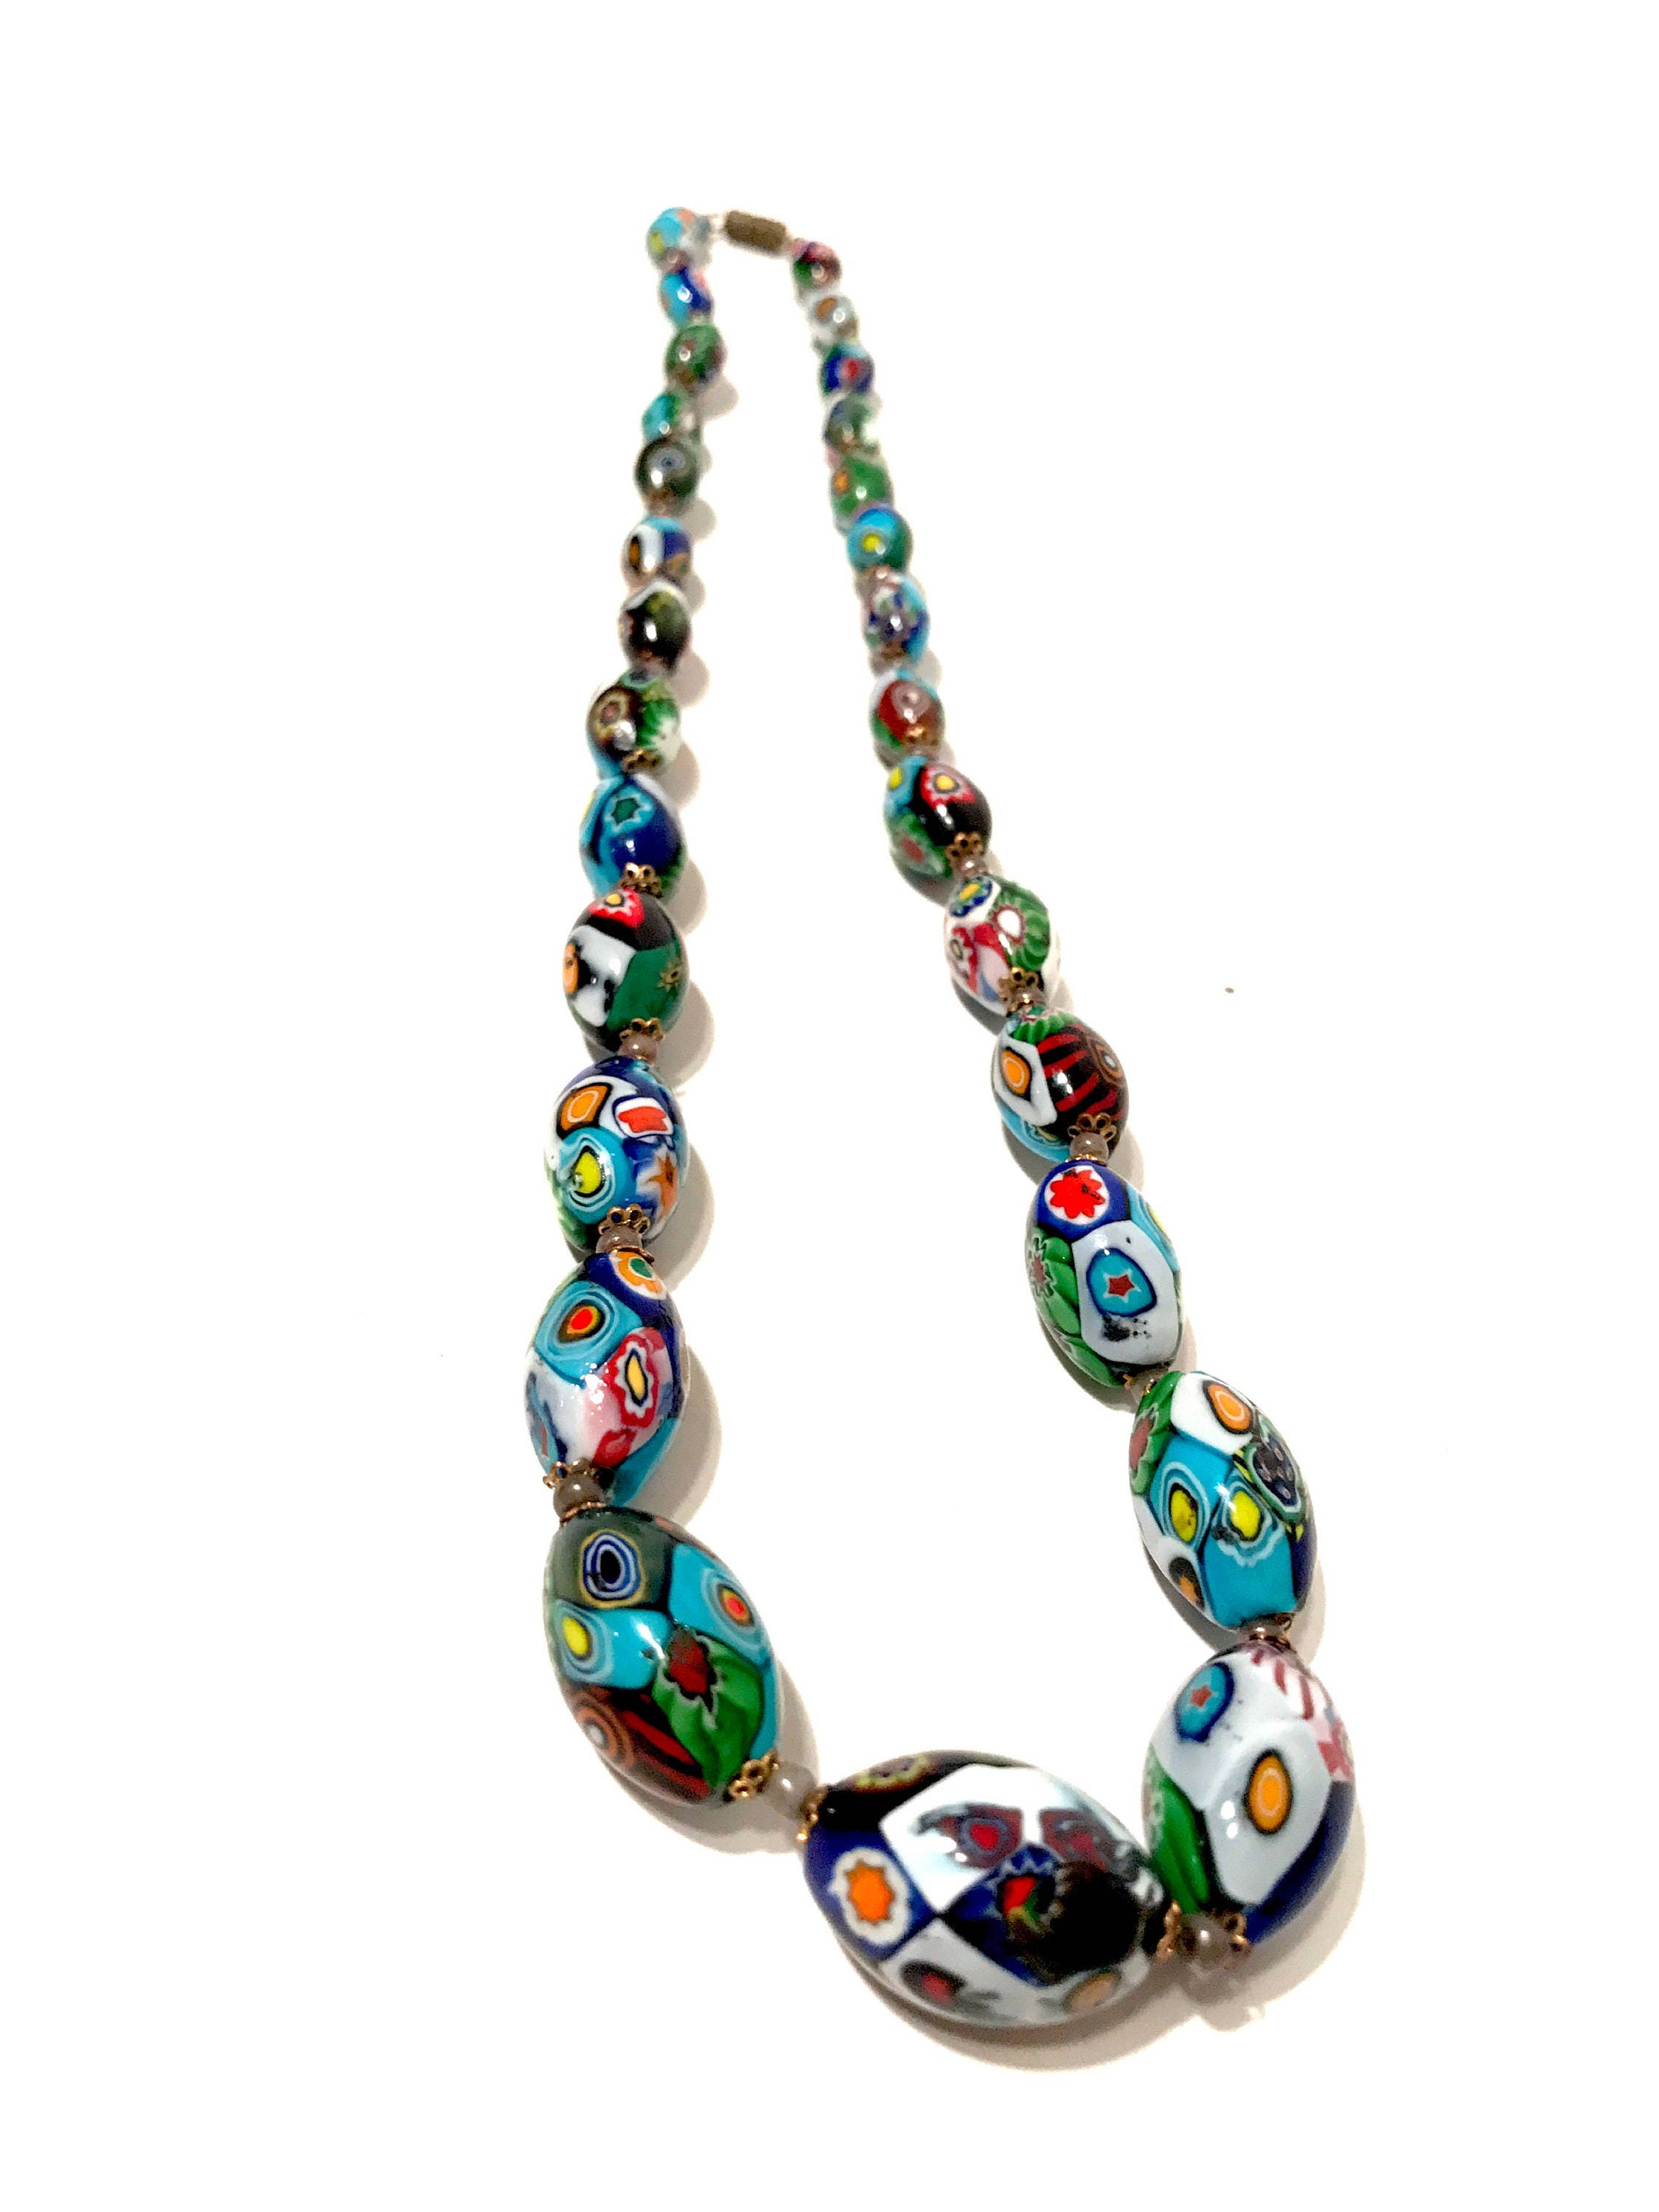 italian lisa necklaces hand blown archives stephanie tag glass silver sterling necklace art product and